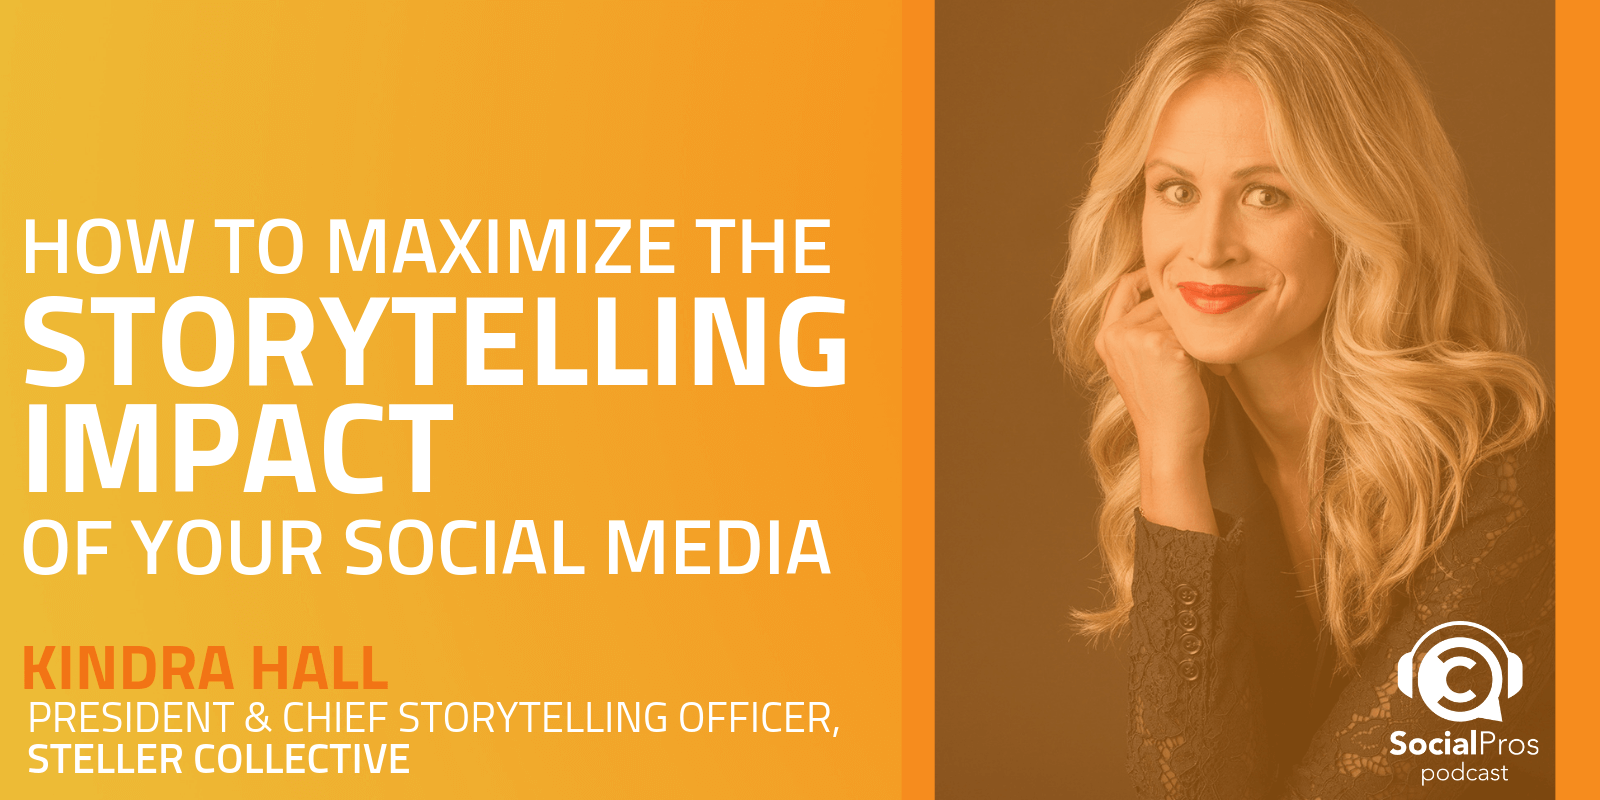 How to Maximize the Storytelling Impact of your Social Media | Convince and Convert: Social Media Consulting and Content Marketing Consulting